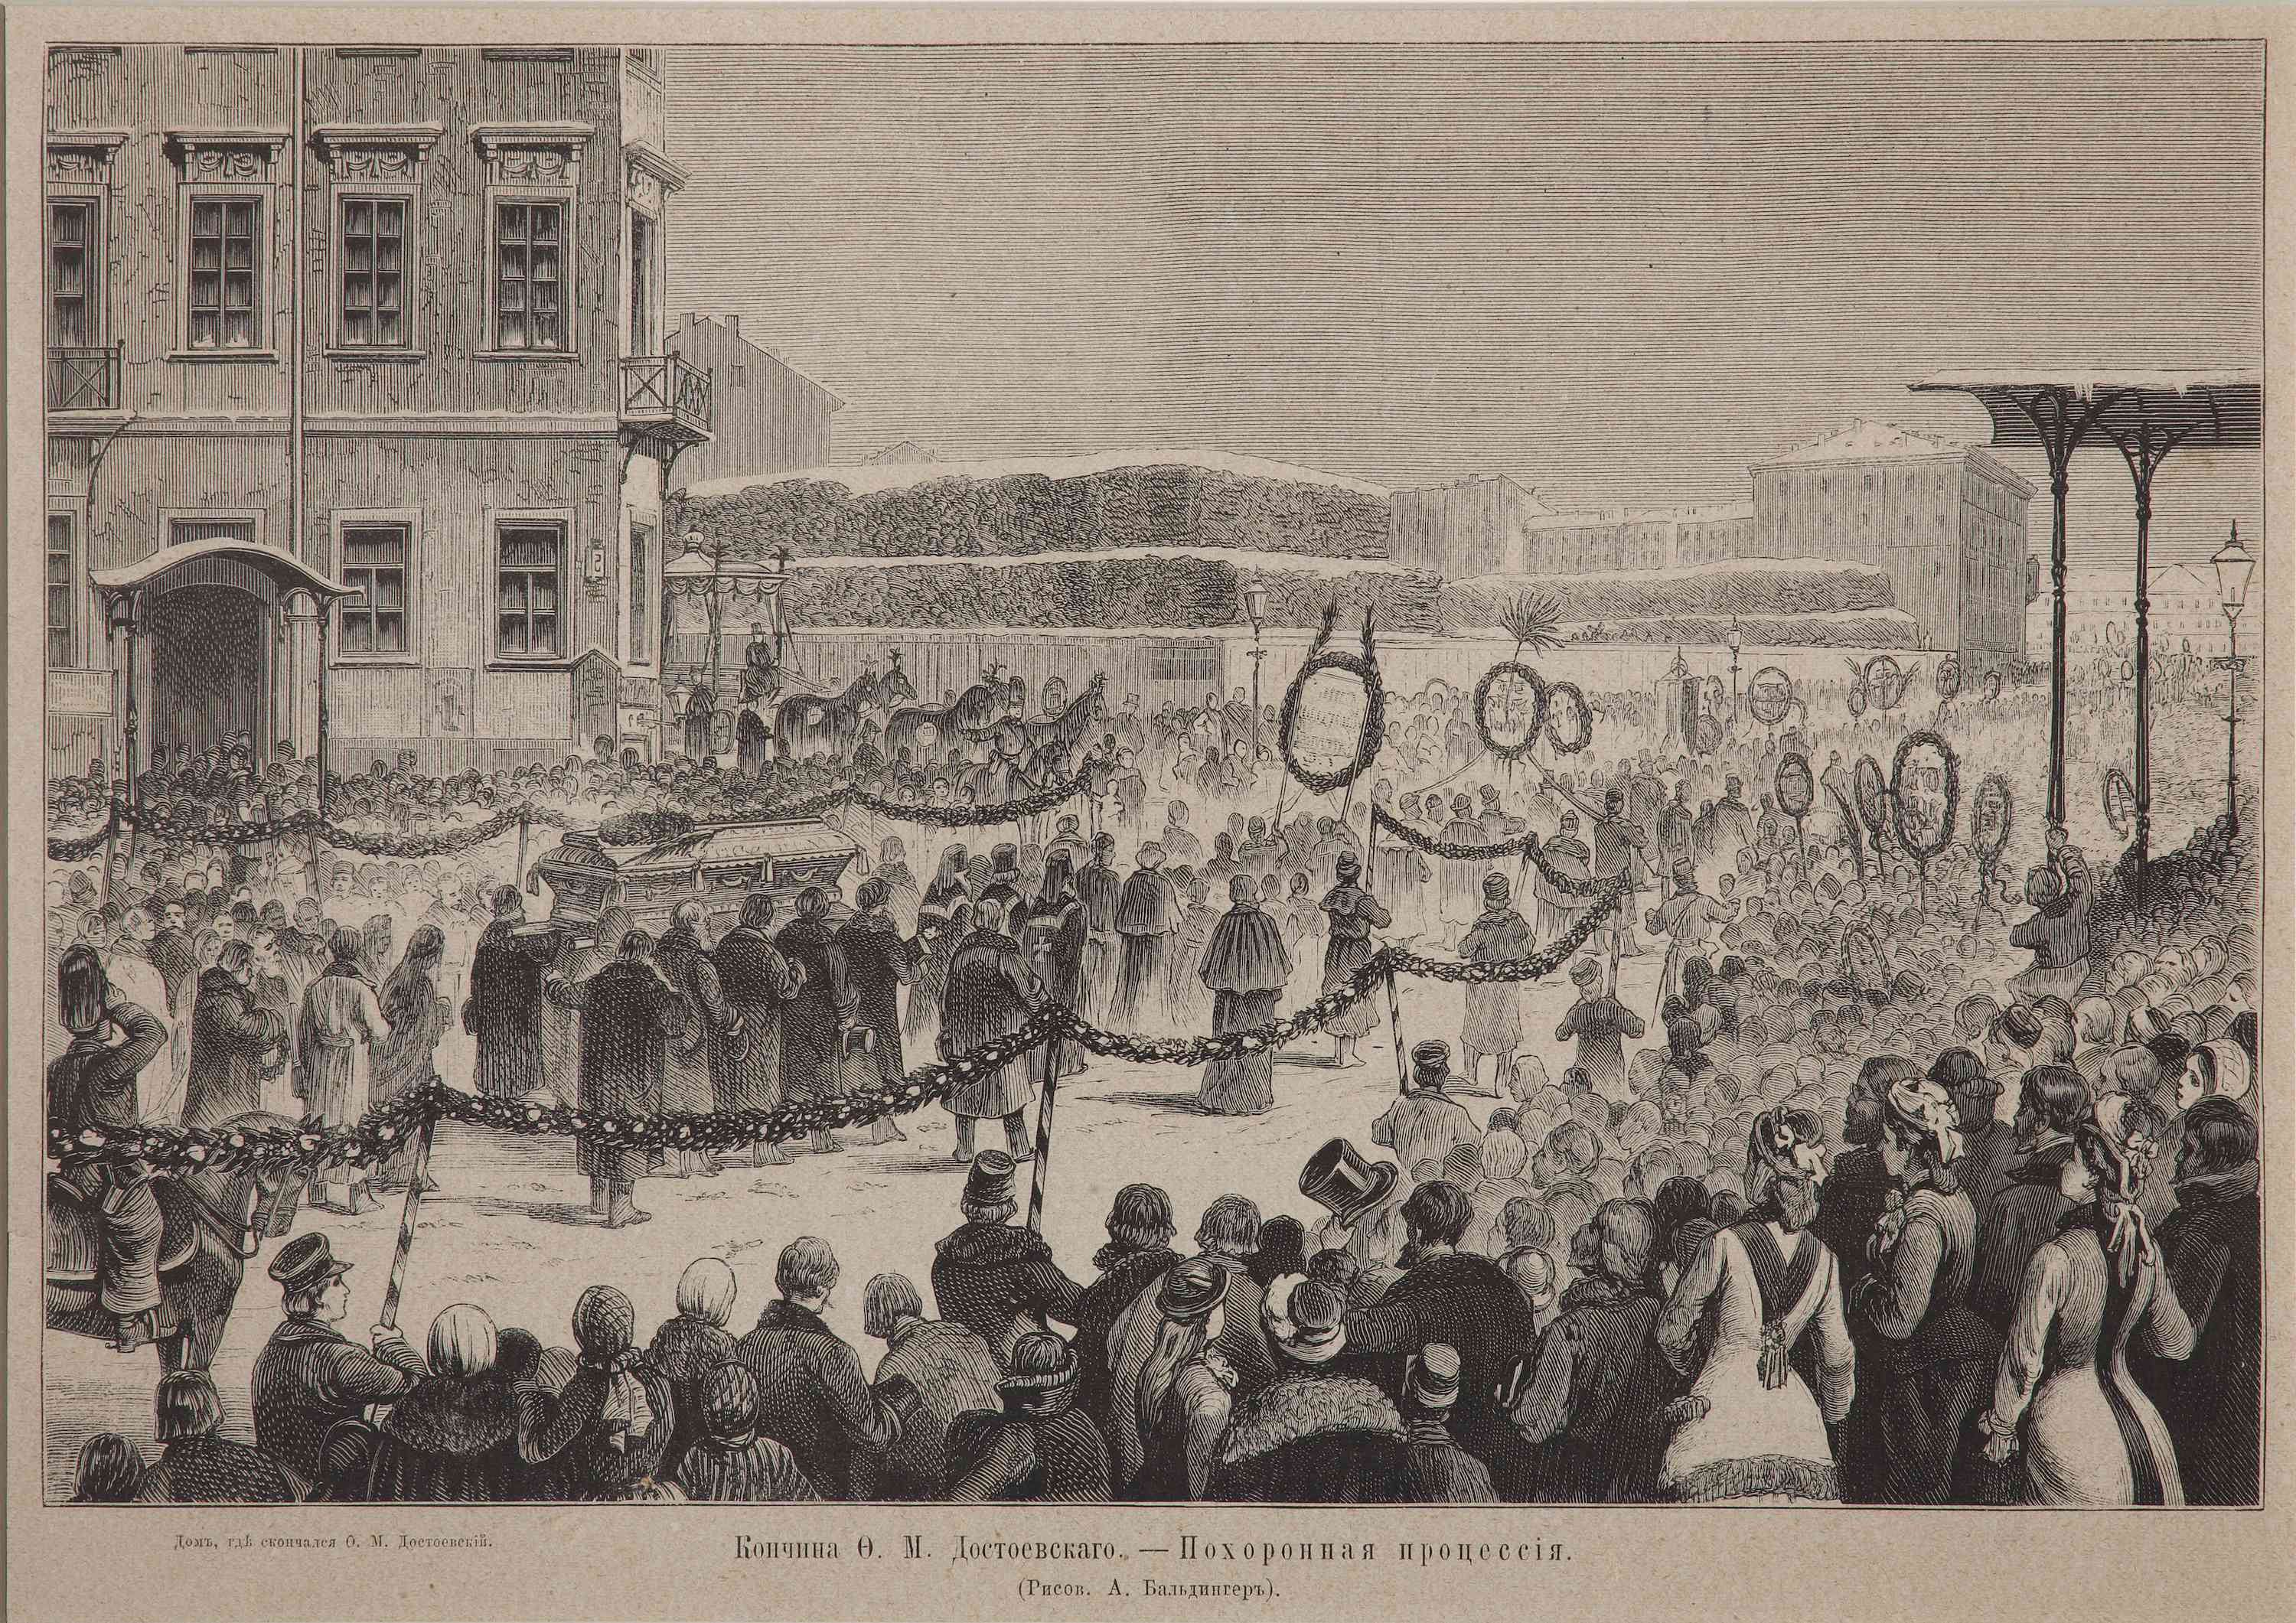 Illustration of crowds in the streets at a funeral procession